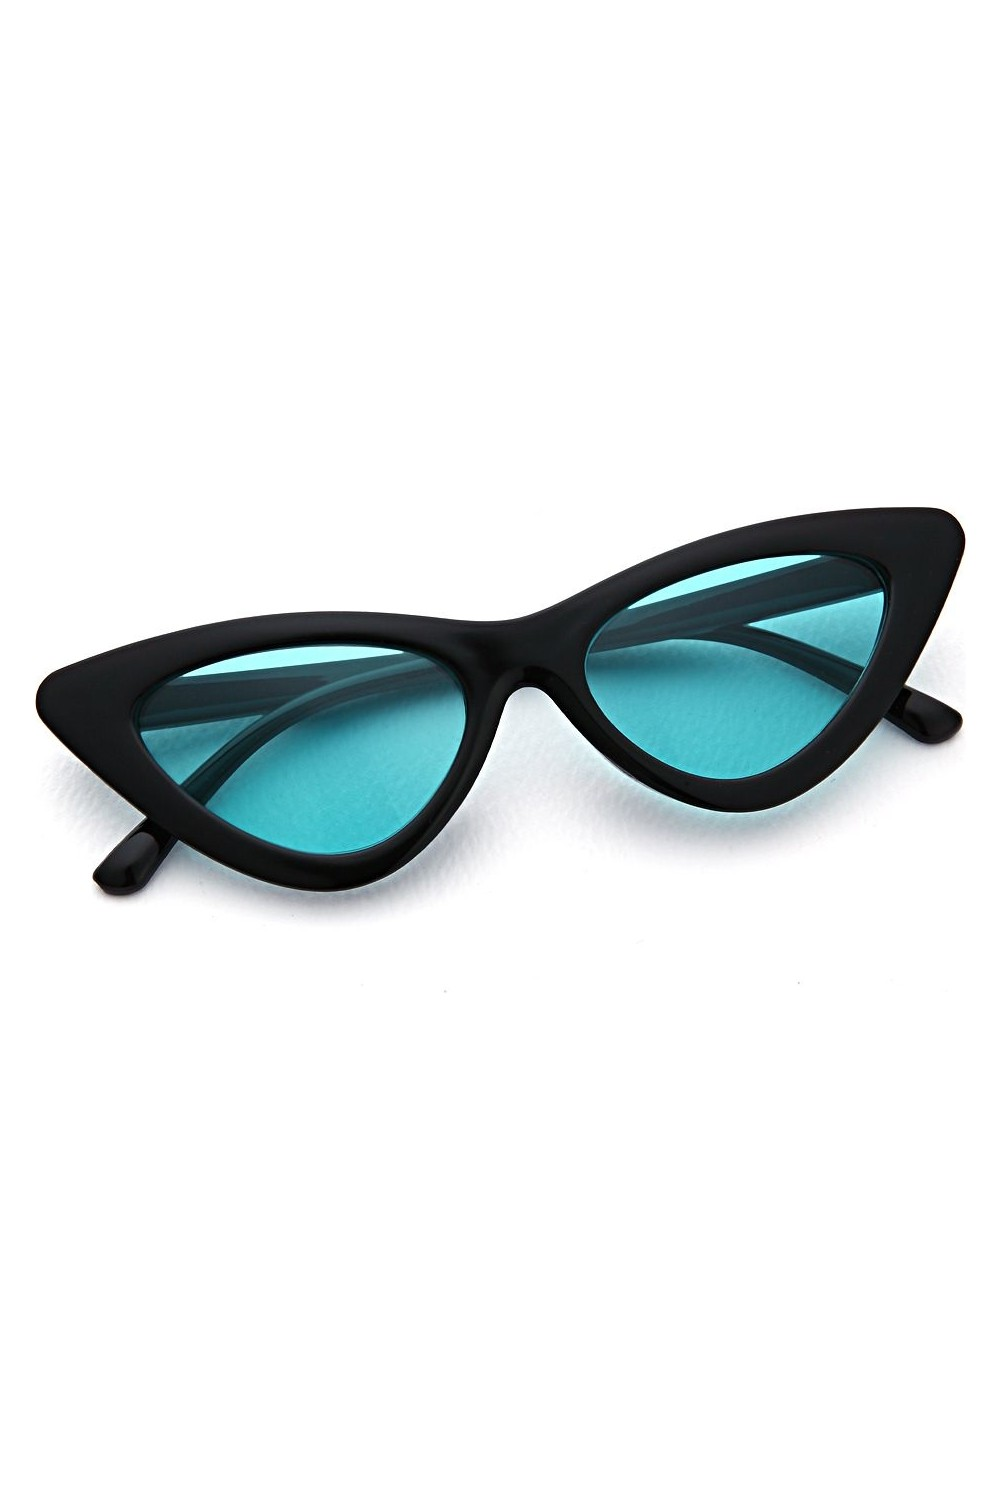 Aqua Di Polo 1987 Women's Sunglasses PLD17B198508